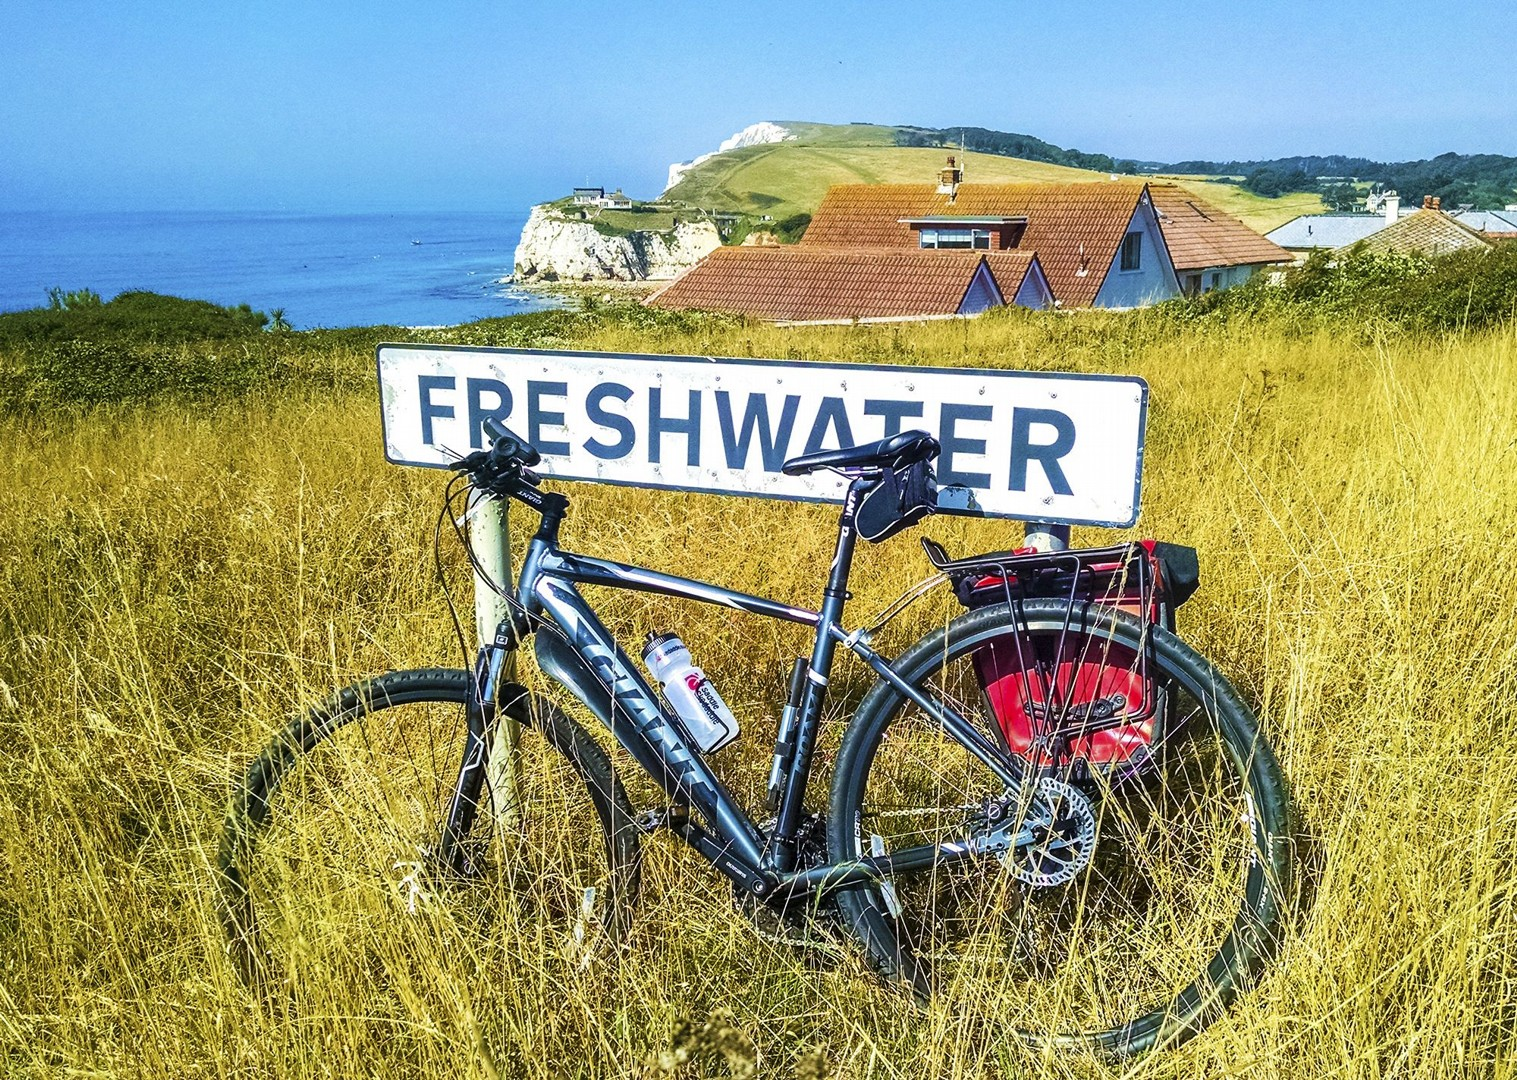 self-guided-cycling-with-saddle-skedaddle-uk-isle-of-wight-freshwater-bay.jpg - UK - Isle of Wight - Freshwater Bay - Self-Guided Leisure Cycling Holiday - Leisure Cycling